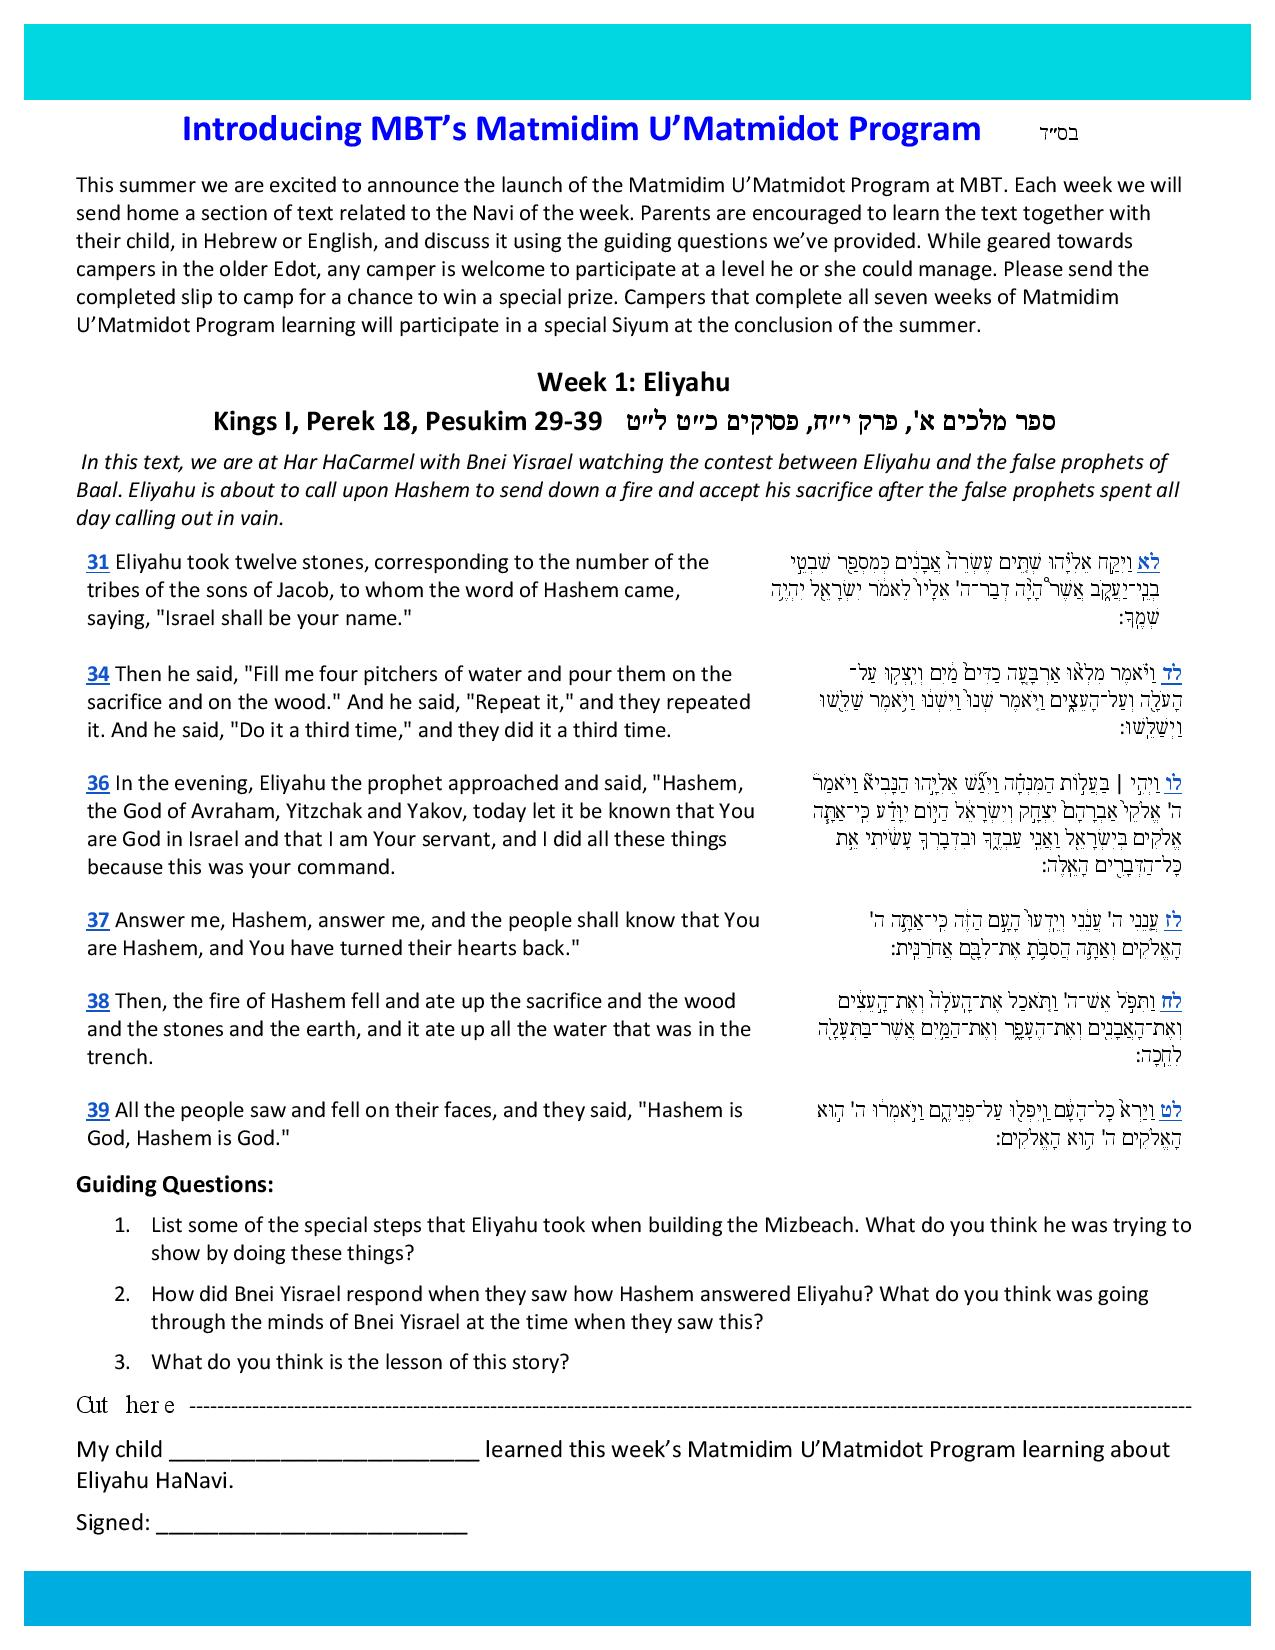 Weekly Chinuch Newsletter_Eliyahu (1)-page-003.jpg